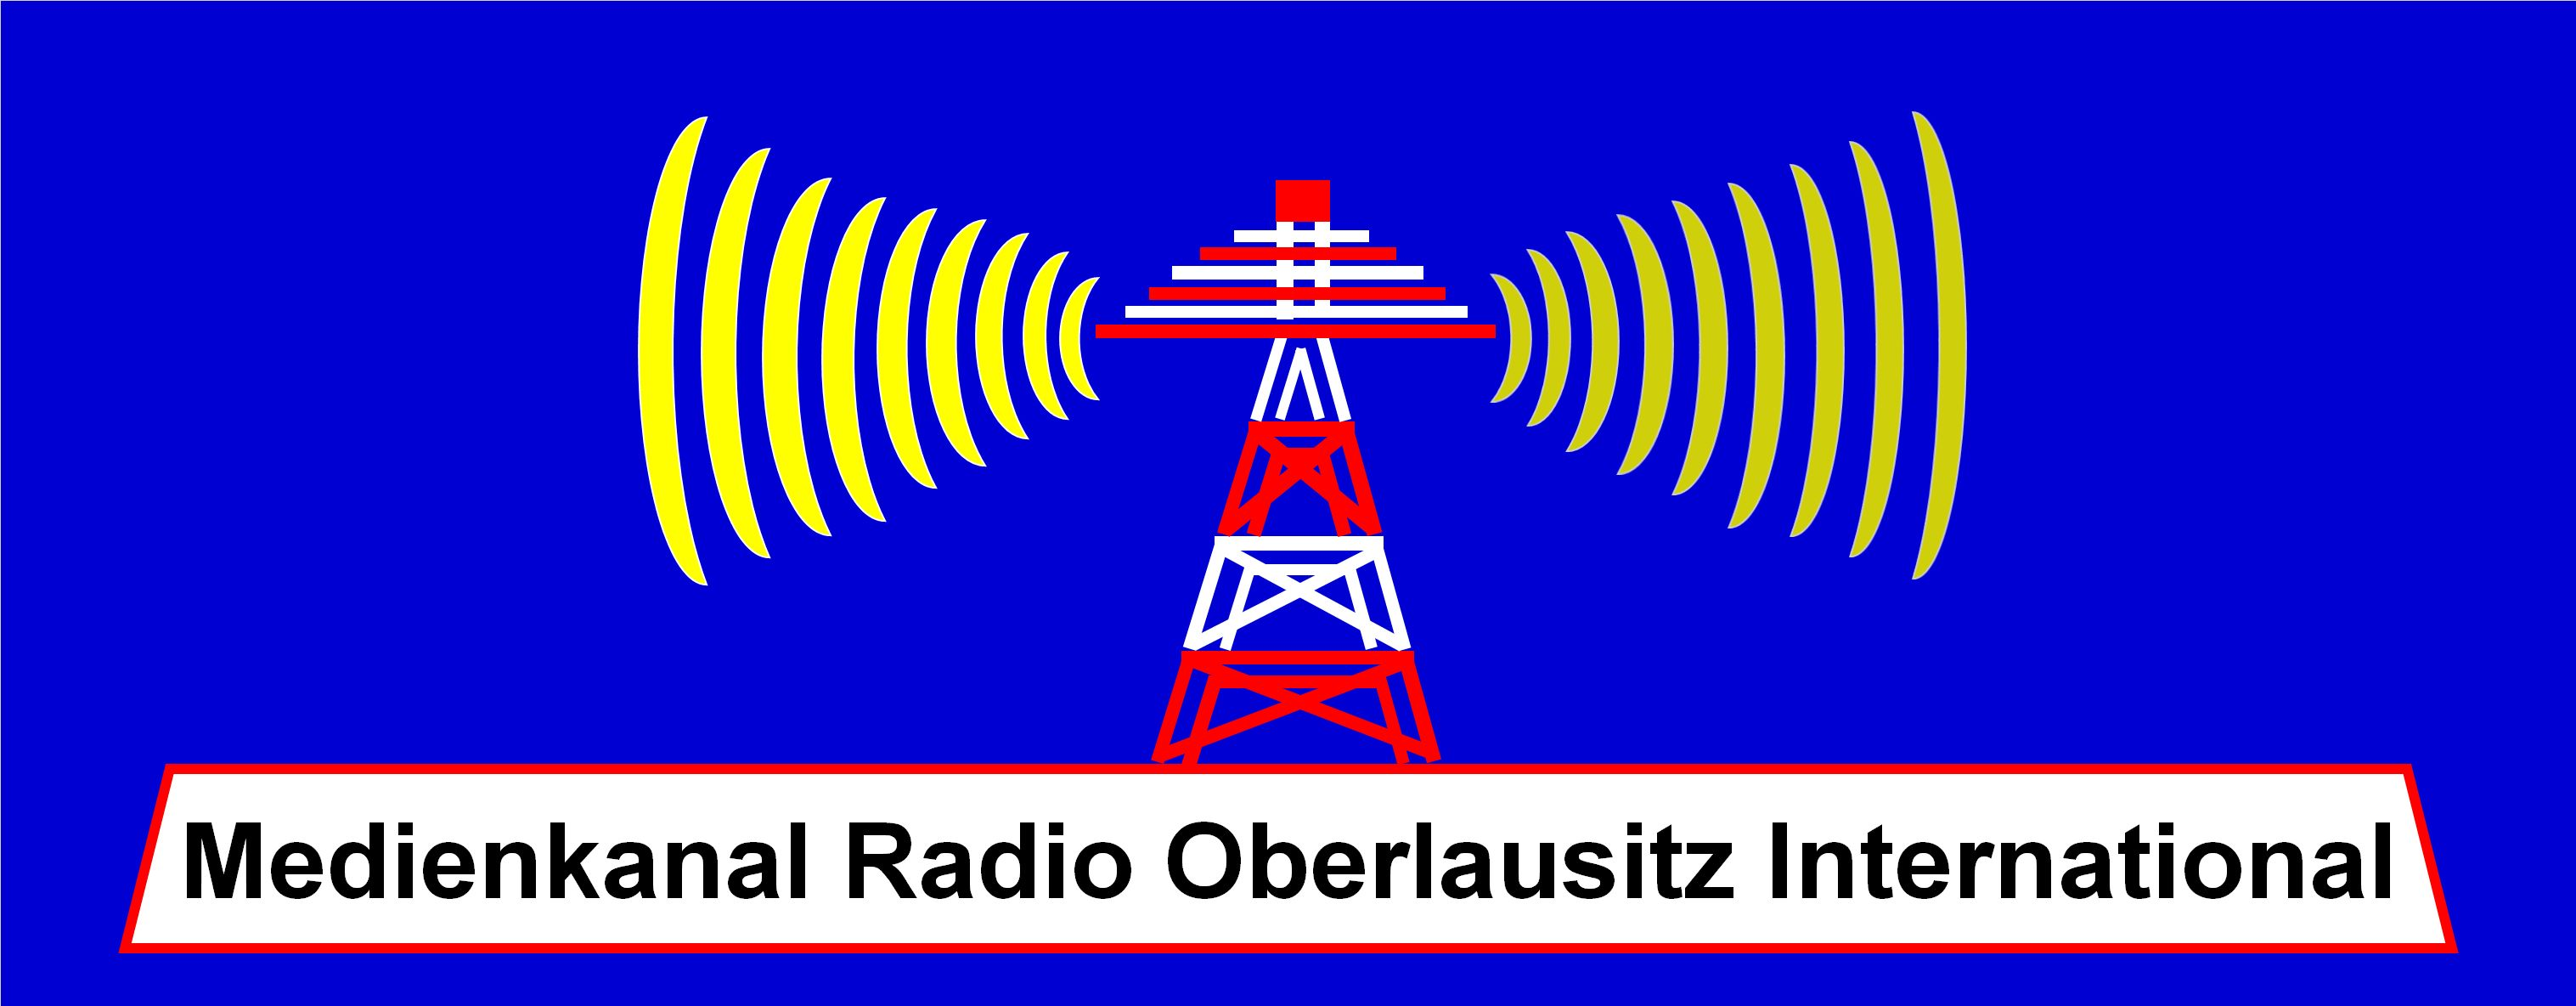 Medienkanal Radio Oberlausitz International